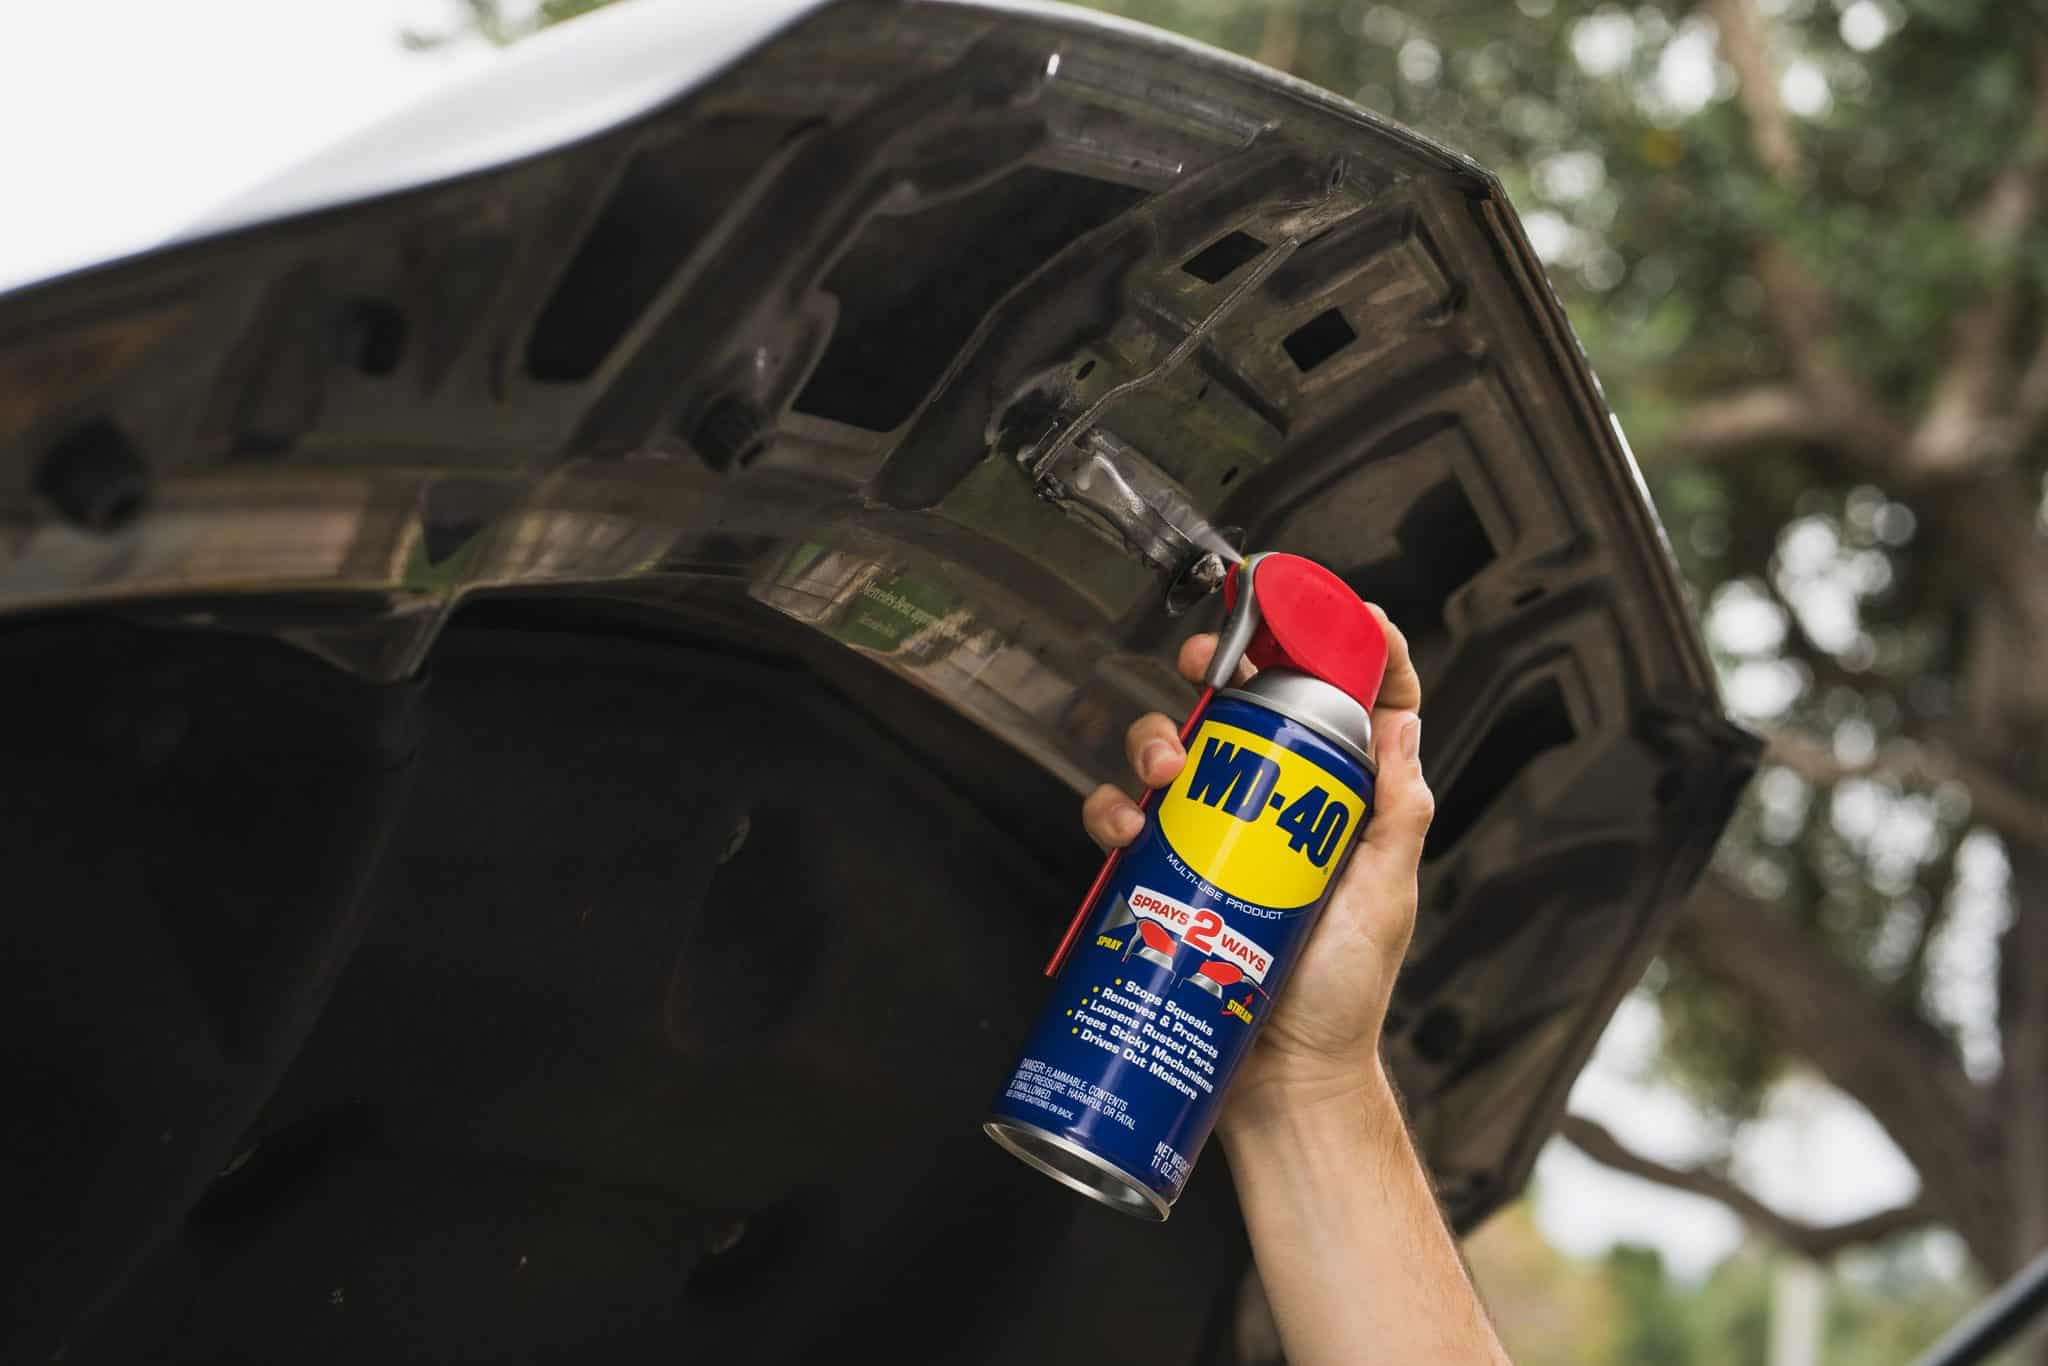 wd 40 multi use product fall uses images 6